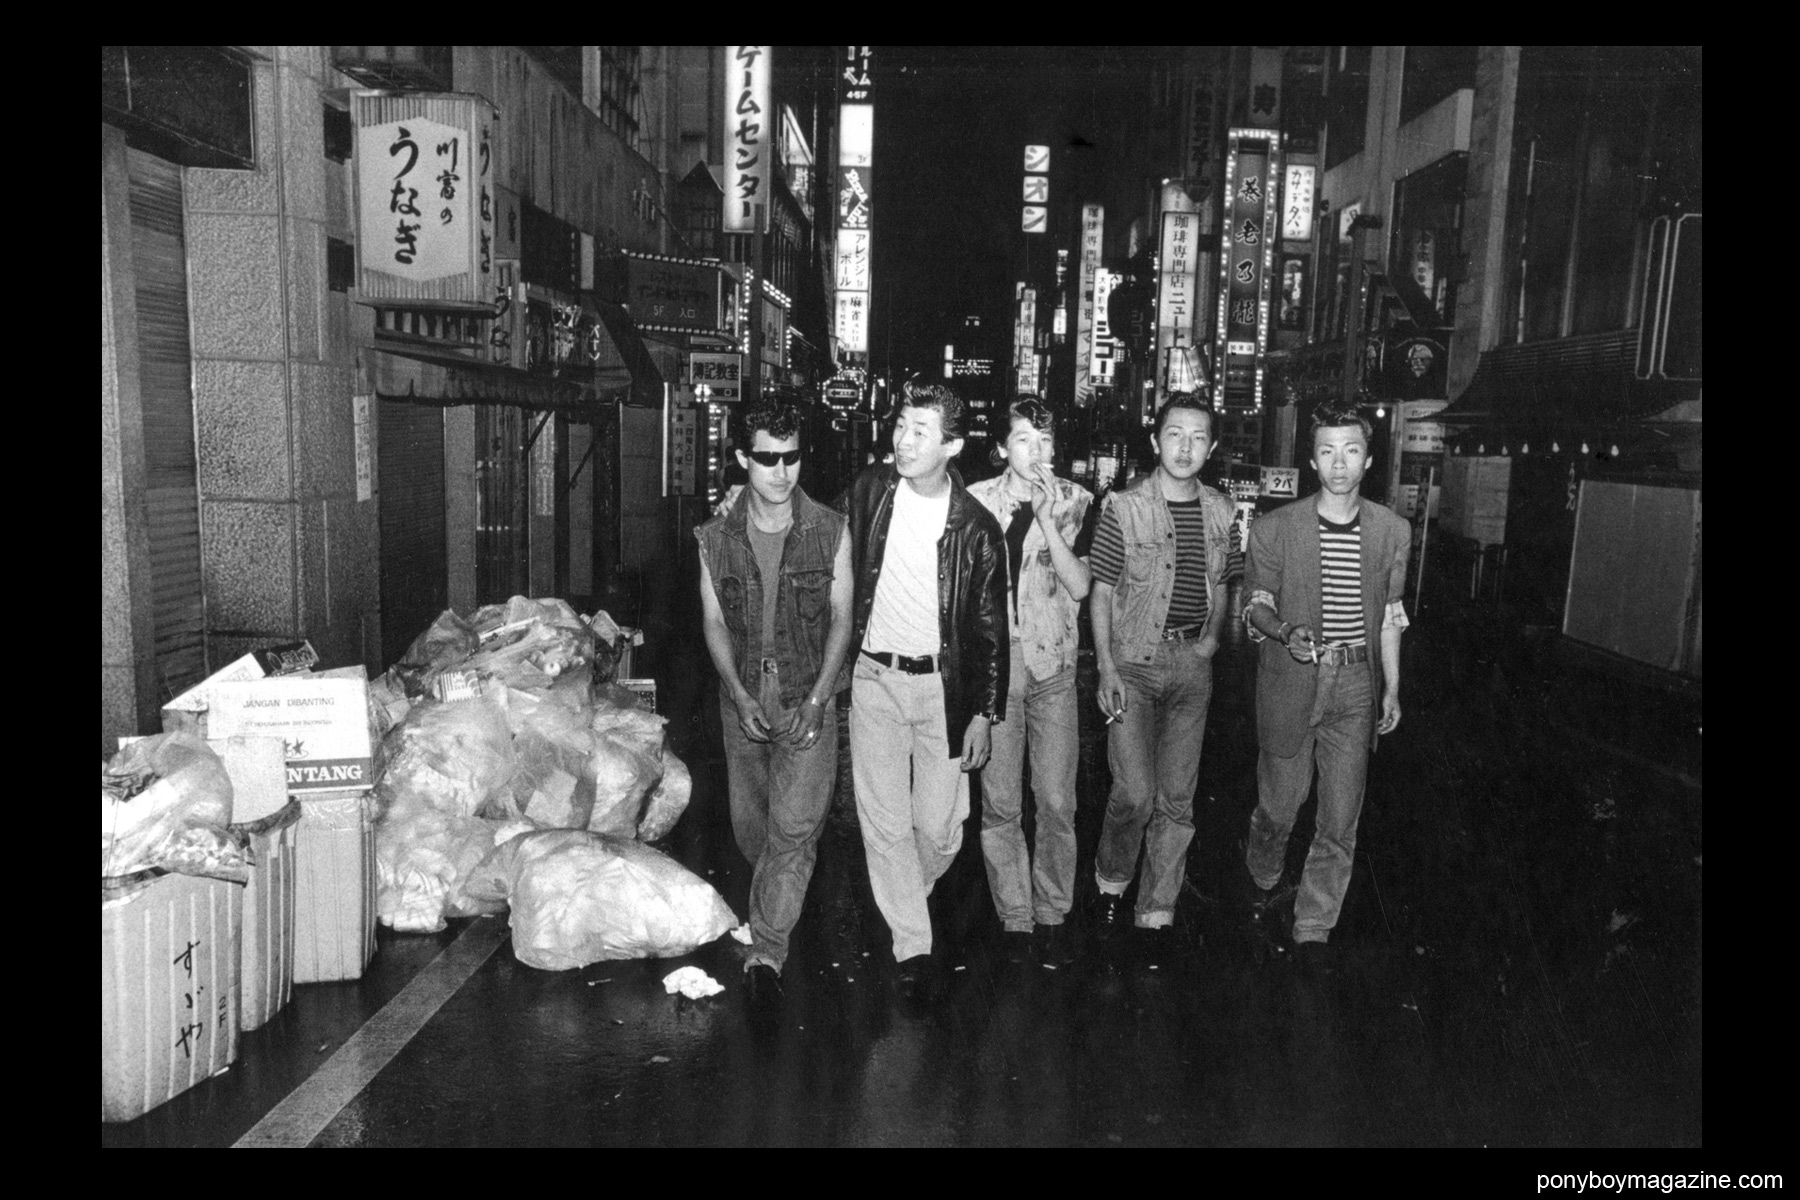 Japanese gang members on the streets of Tokyo in the 1960's, photographed by Watanabe Katsumi in the book Gangs of Kabukicho for Ponyboy Magazine.